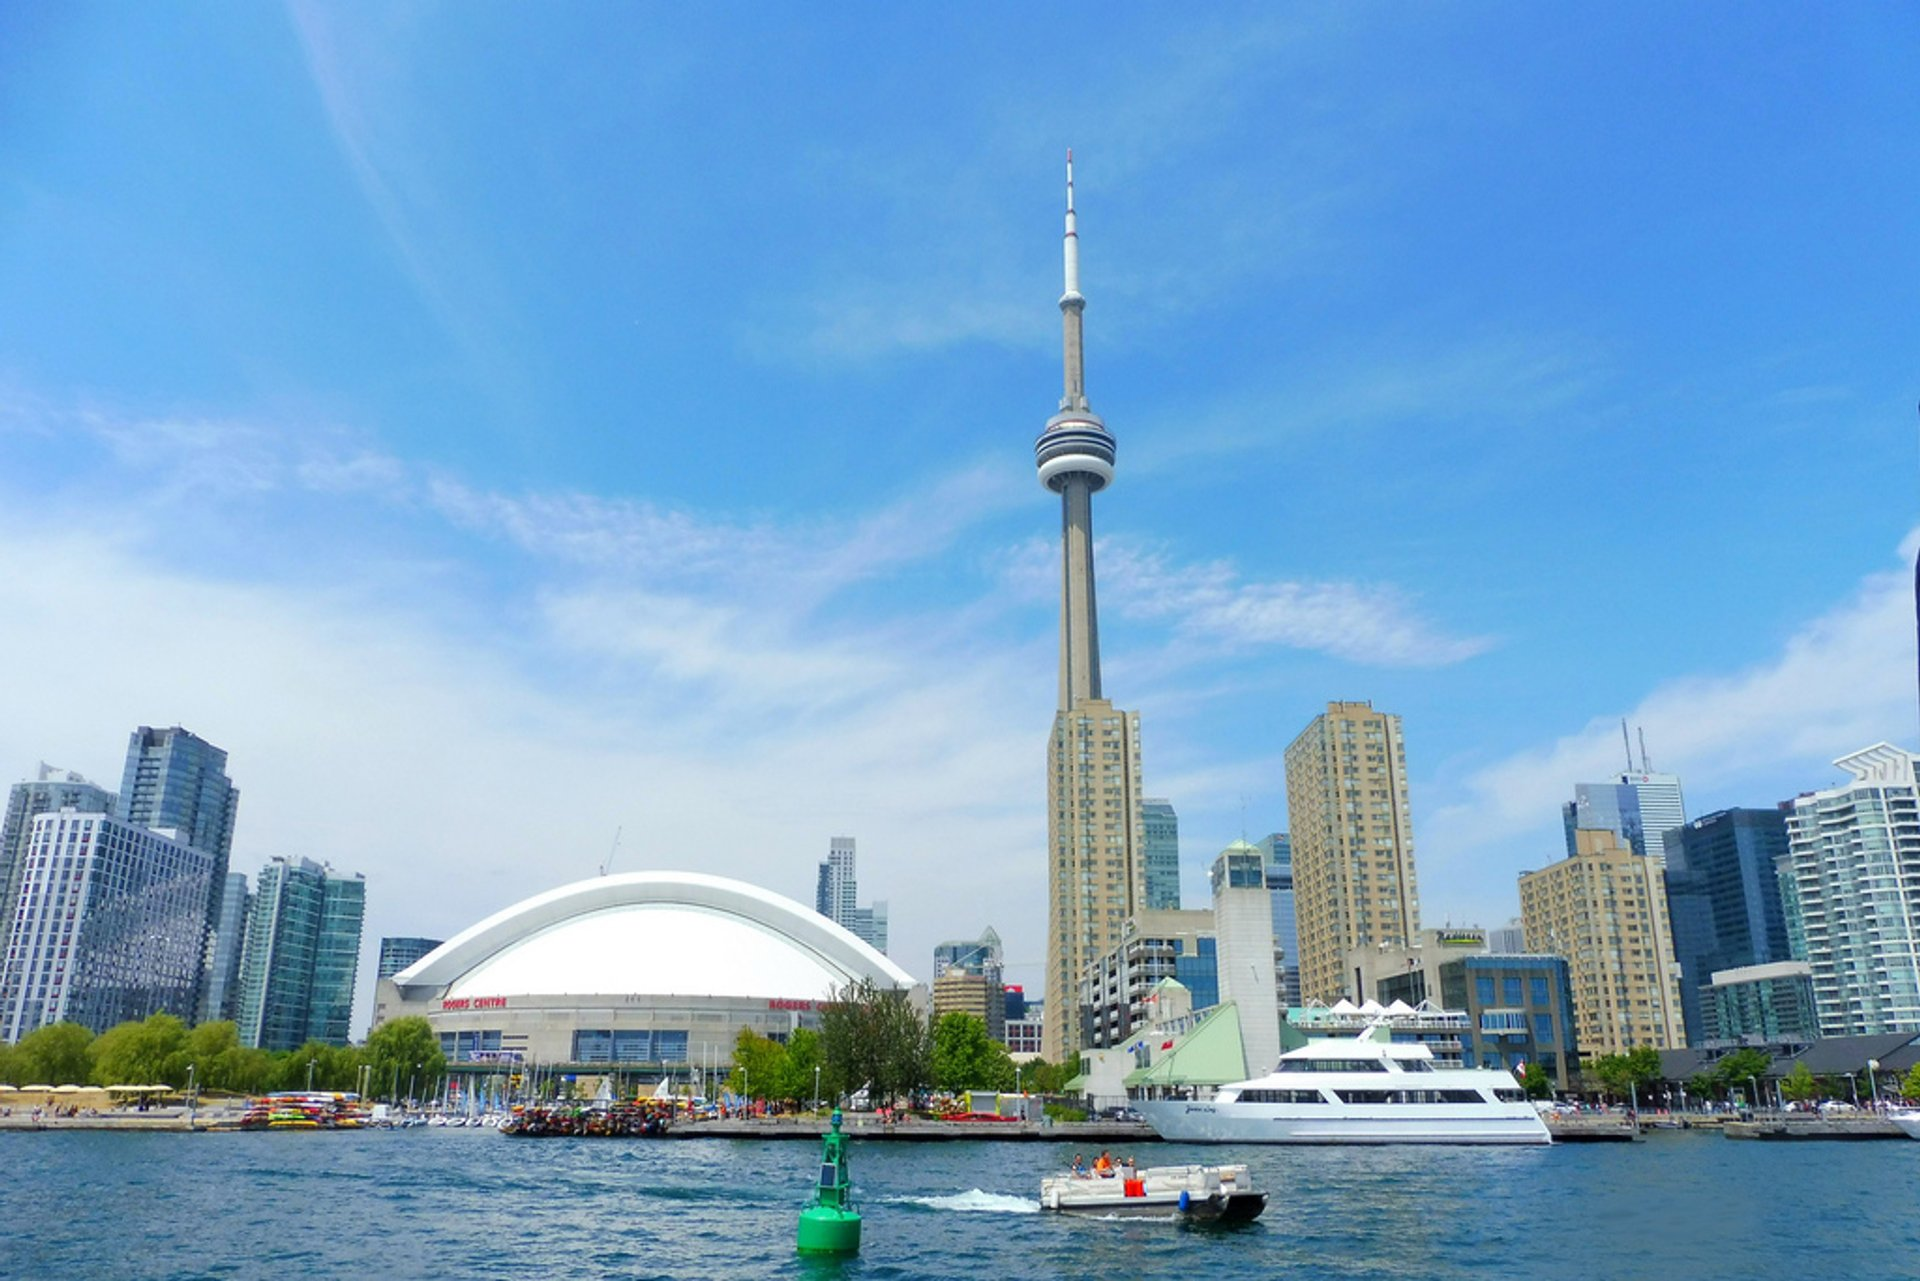 Boat Cruises in Toronto - Best Season